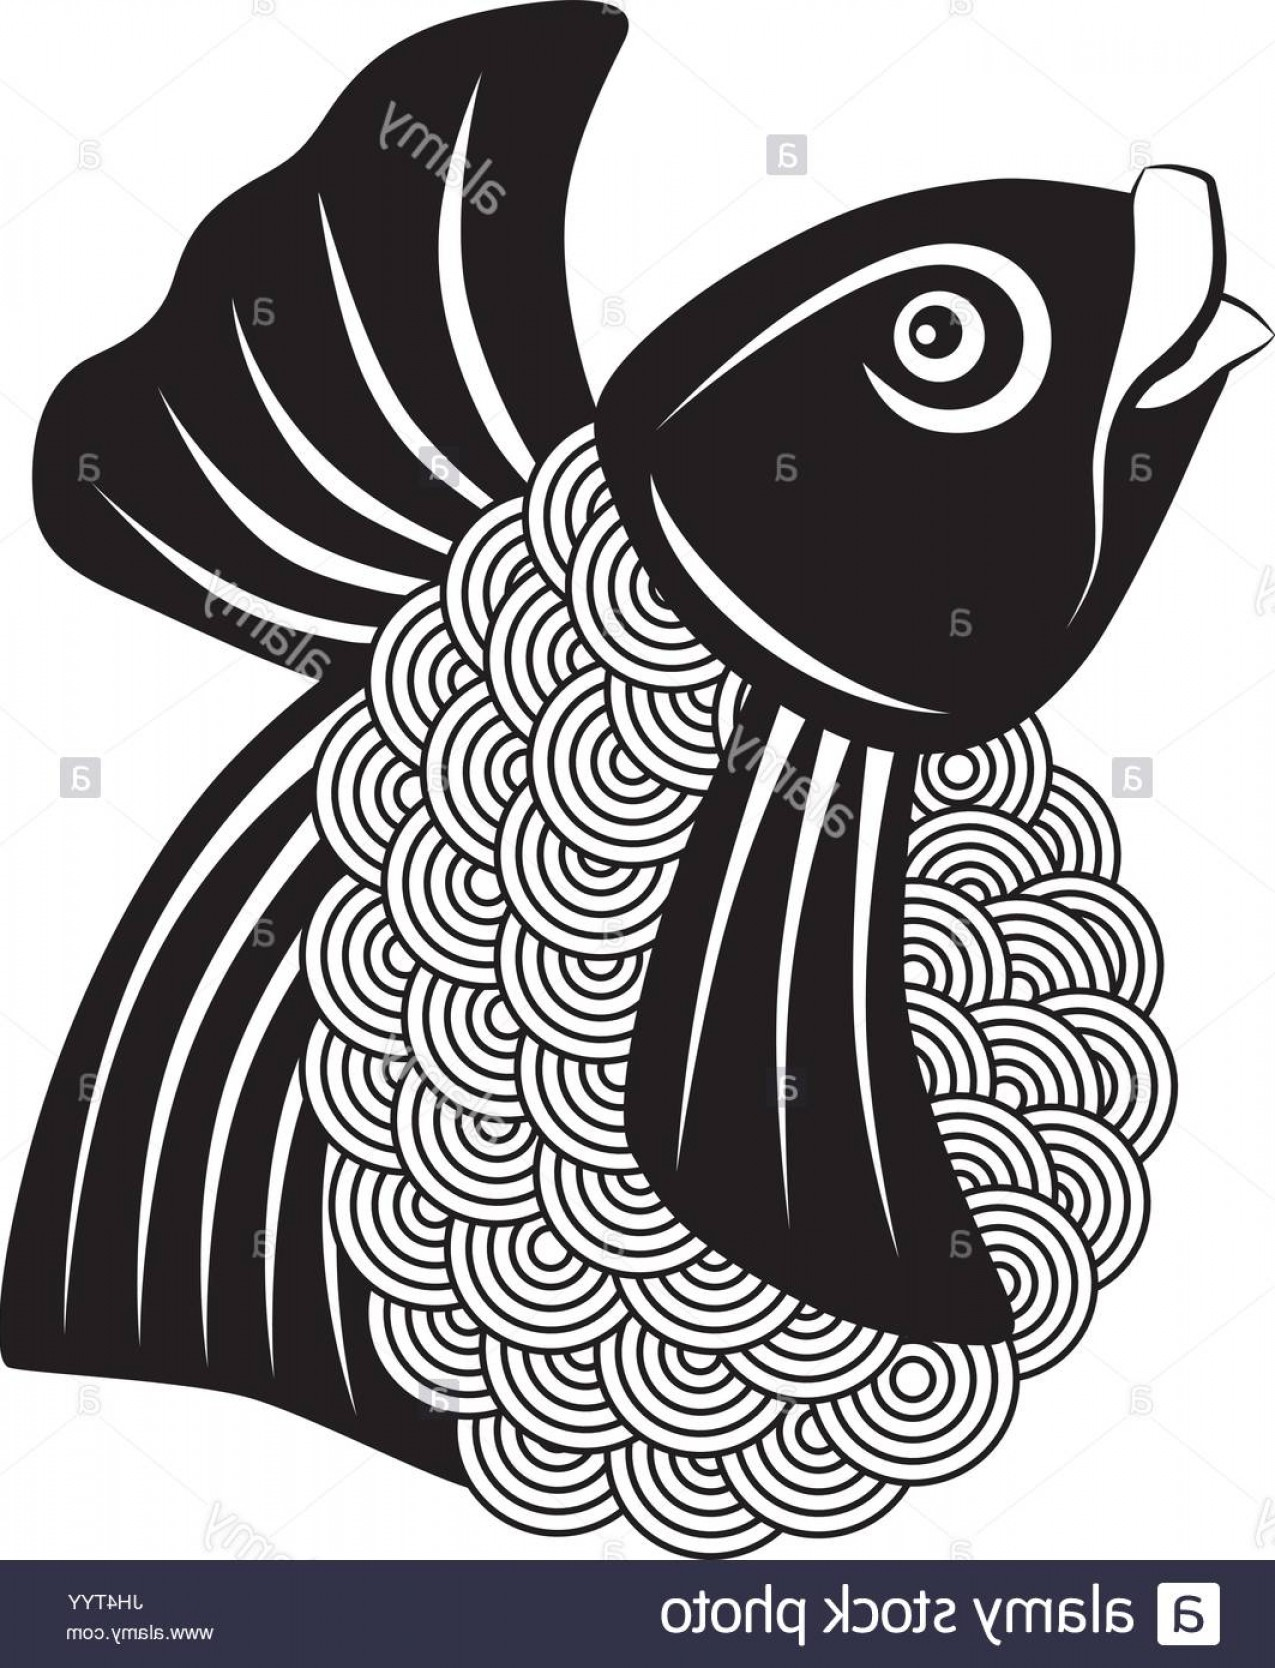 Black And White Koi Vector: Stock Photo Japanese Koi Fish Abstract Black And White Outline Illustration